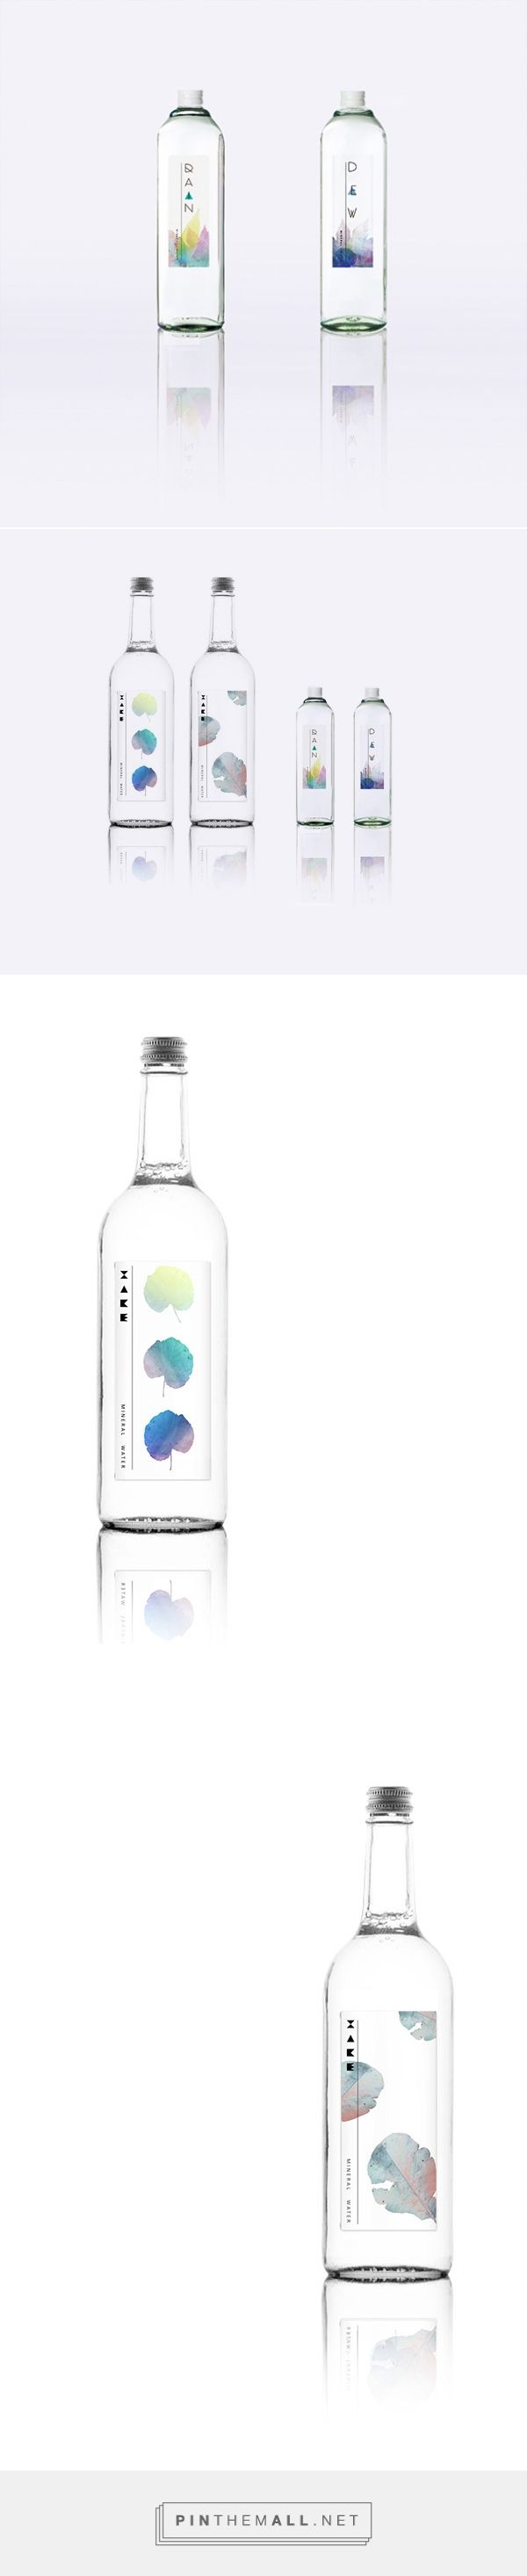 Mineral Water Packaging by Erica Su                                                                                                                                                                                 More